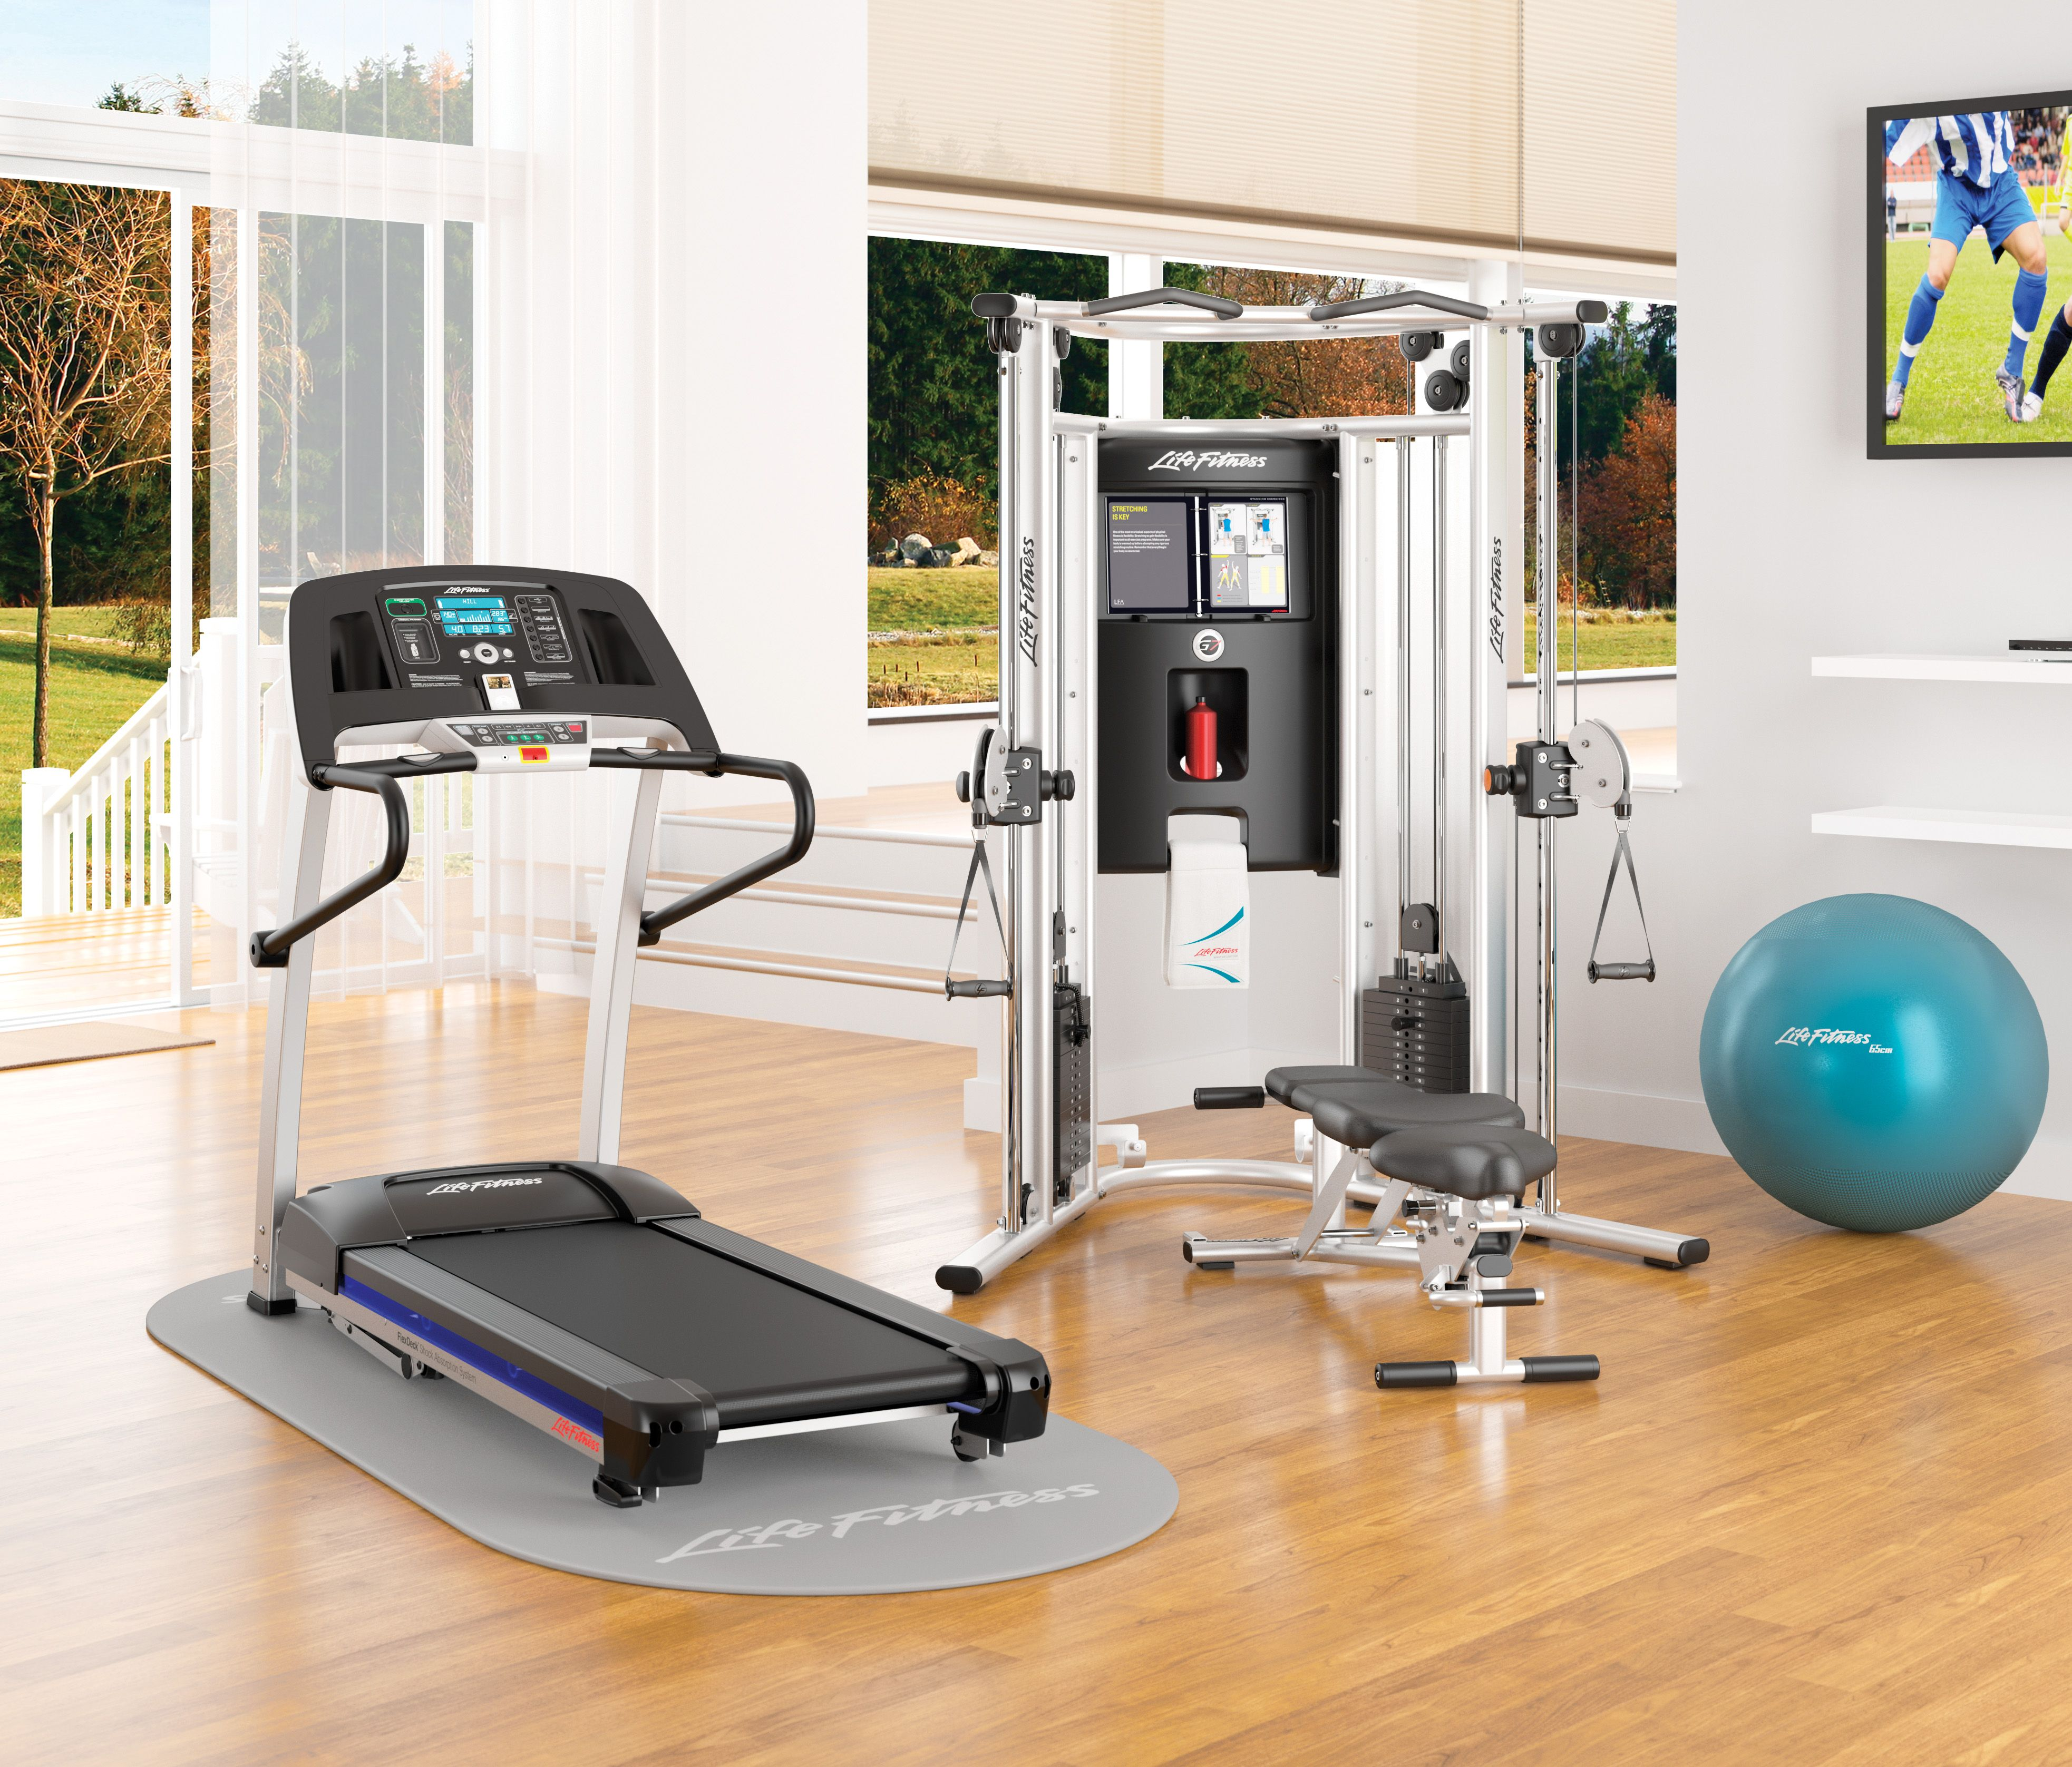 Life fitness f treadmill g multigym life fitness at home